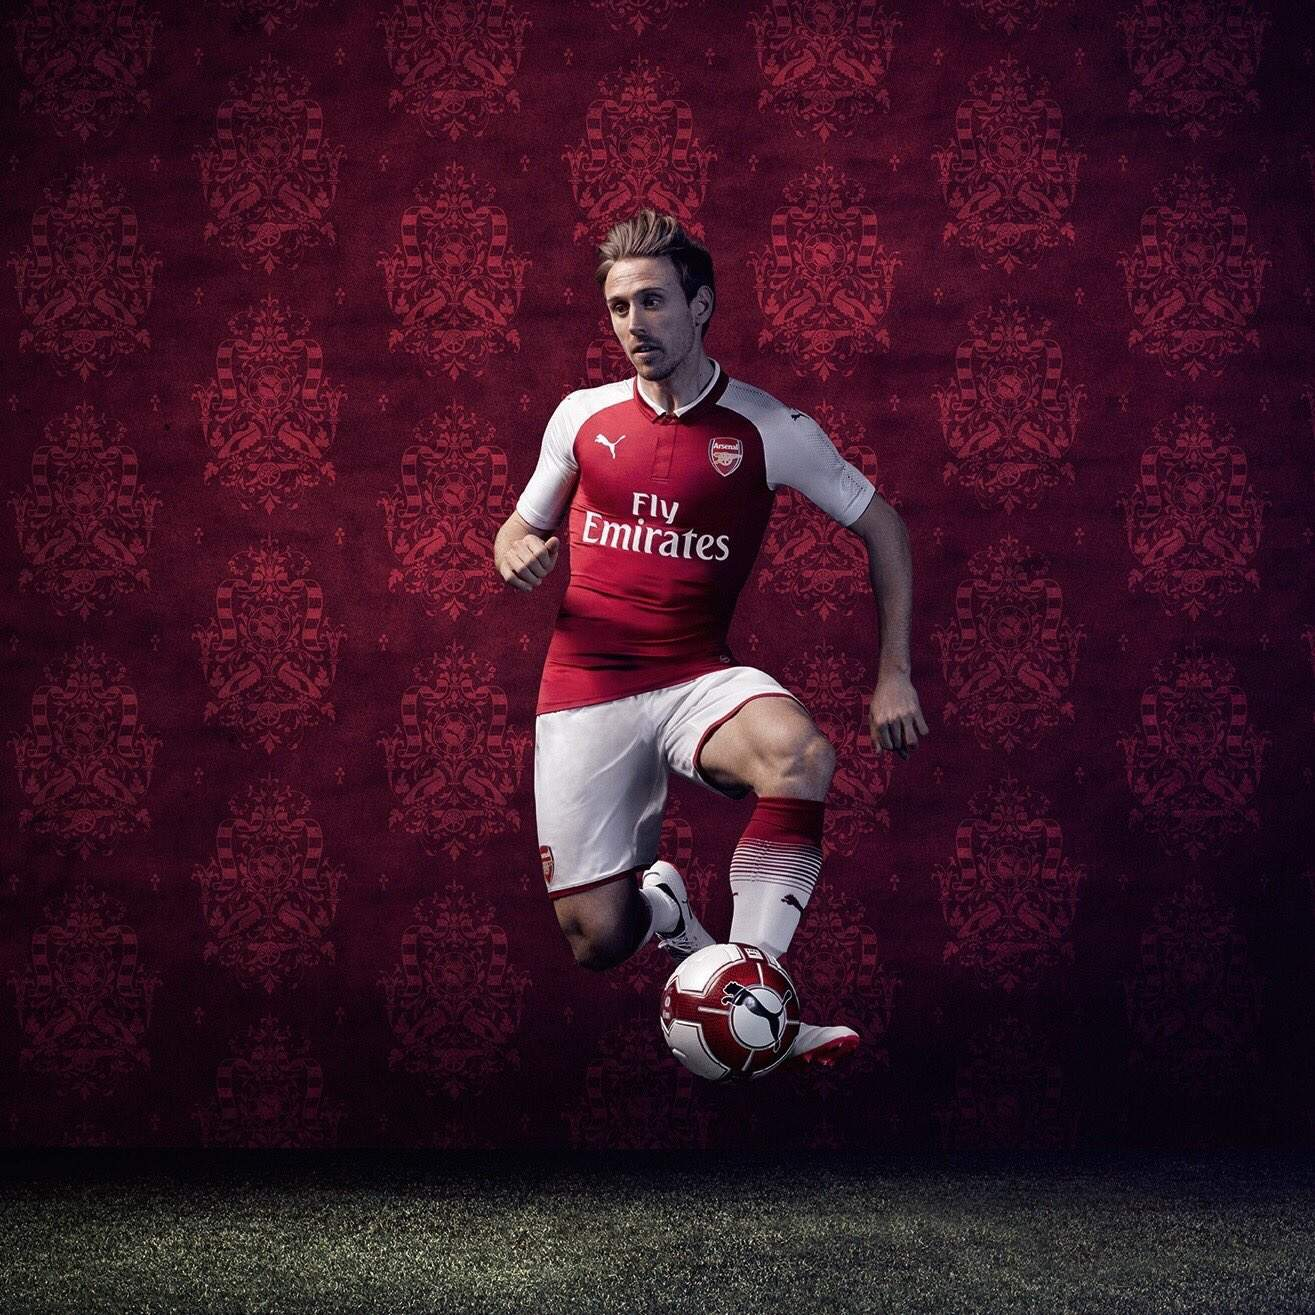 decdf1dec In The Red - Arsenal 2017/18 Home Kit Gets Mixed Reactions